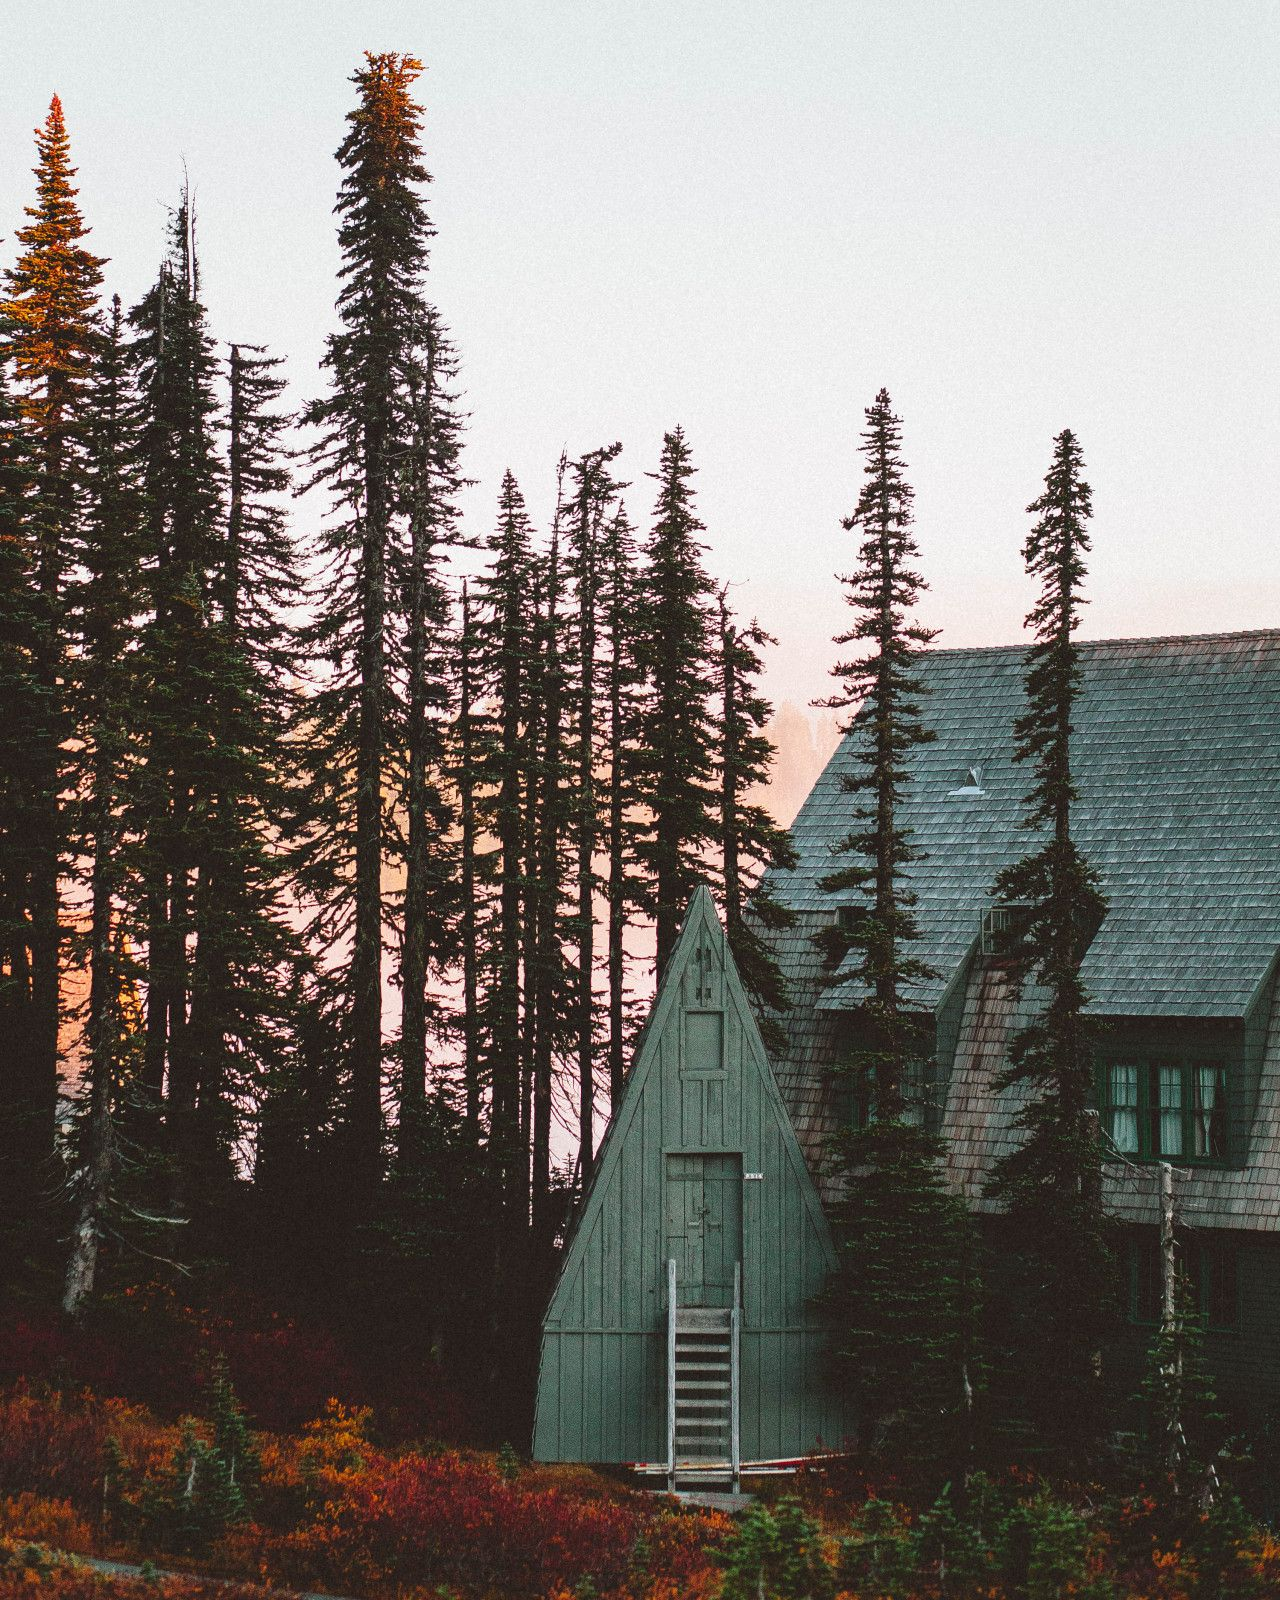 Affinity At Winter Park Home: Hiking Trip, Cabin Life, Winter Fire